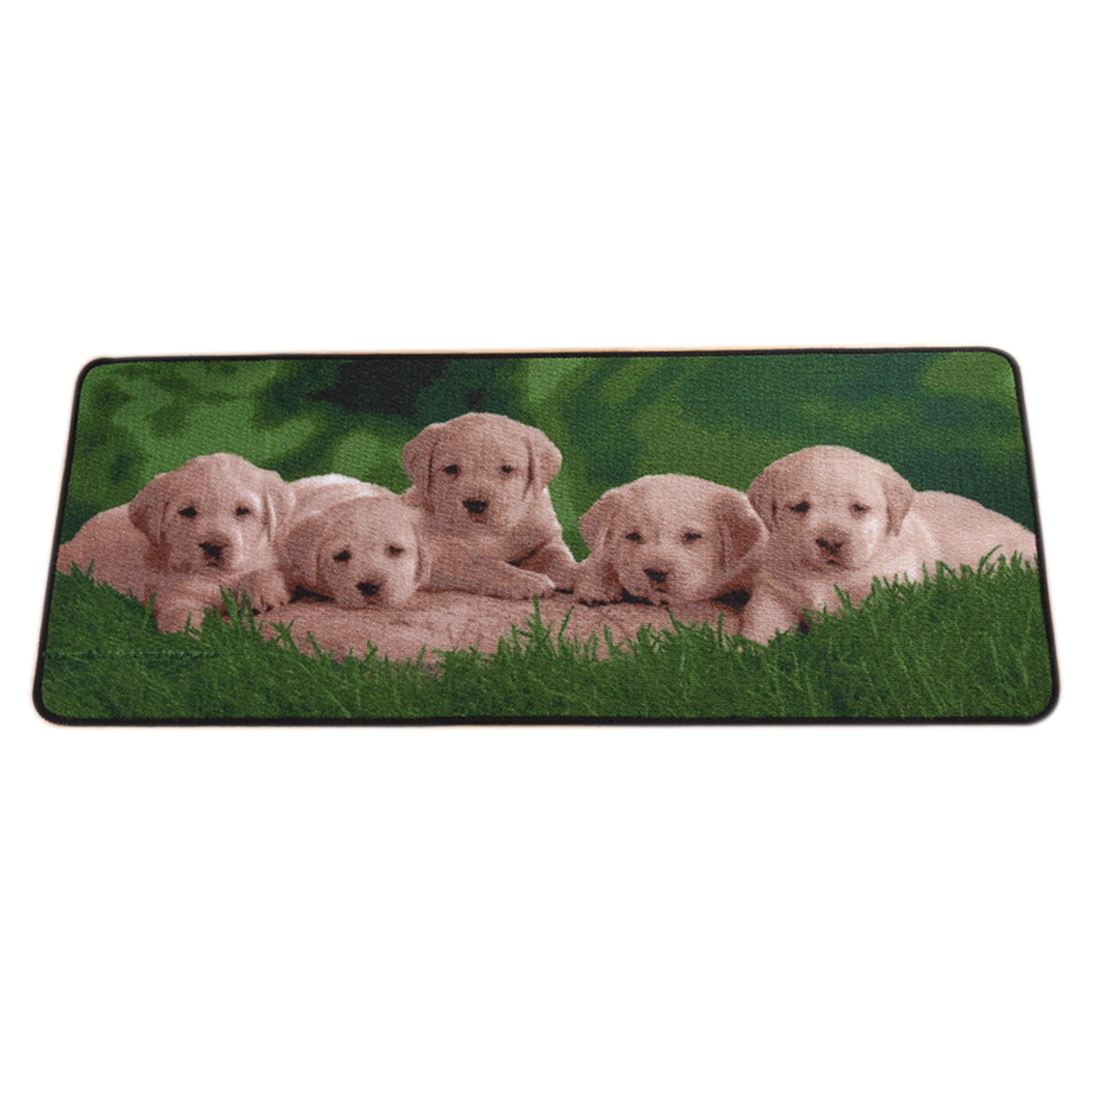 Soft Kitchen Floor Mats Popular Kitchen Floor Mats Buy Cheap Kitchen Floor Mats Lots From